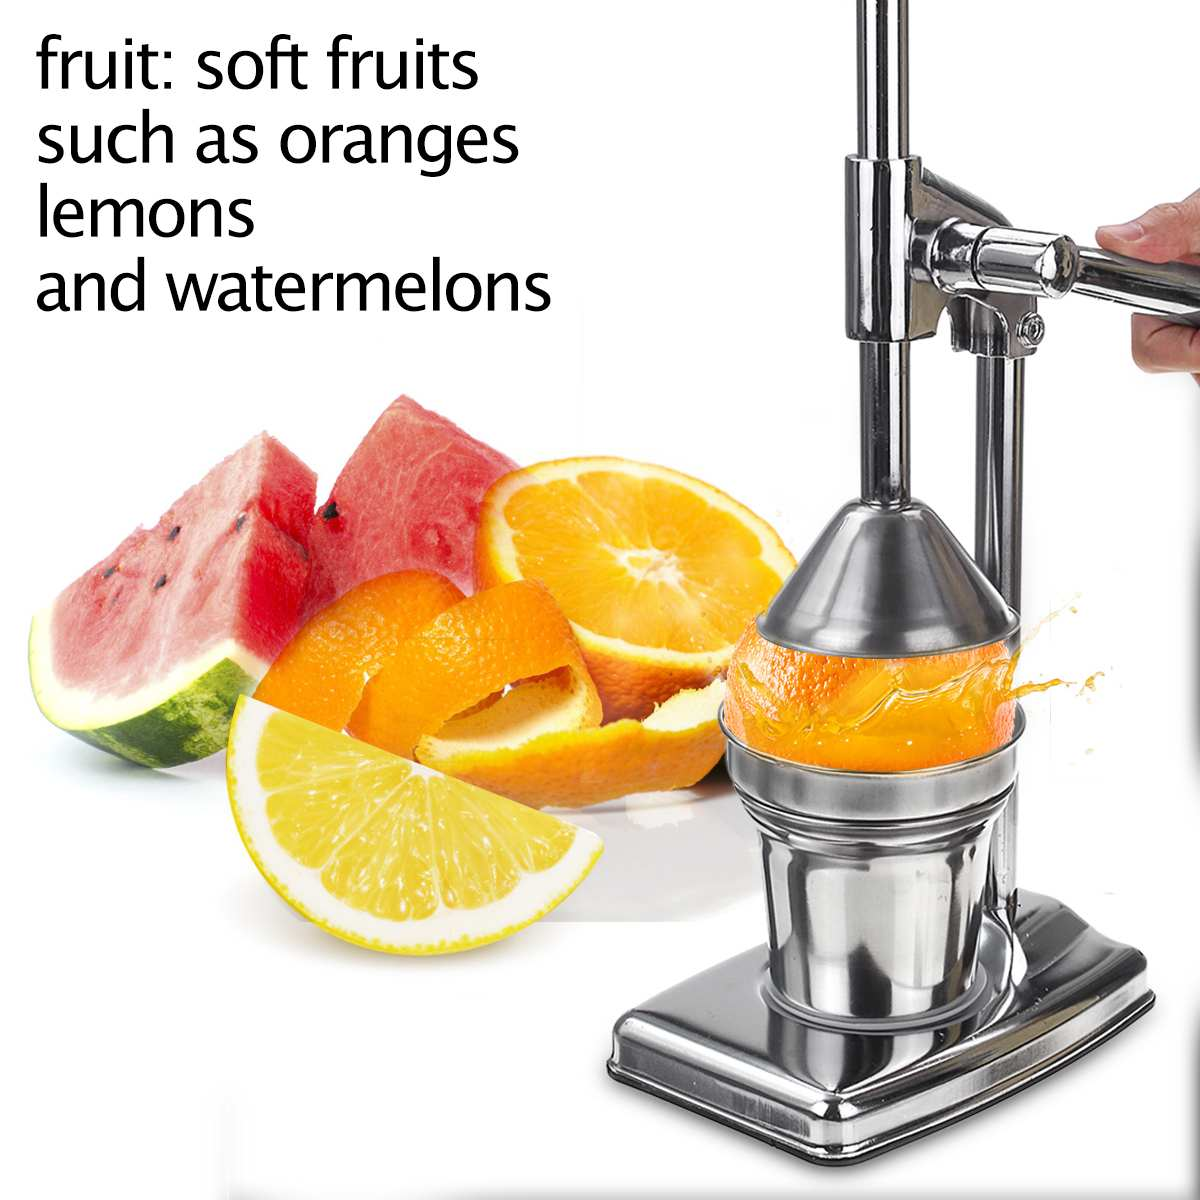 Stainless Steel Manual Lemon Squeezer Pomegranate Squeezer Hand Press Citrus Lemon Maker Orange Juicer Kitchen Tool